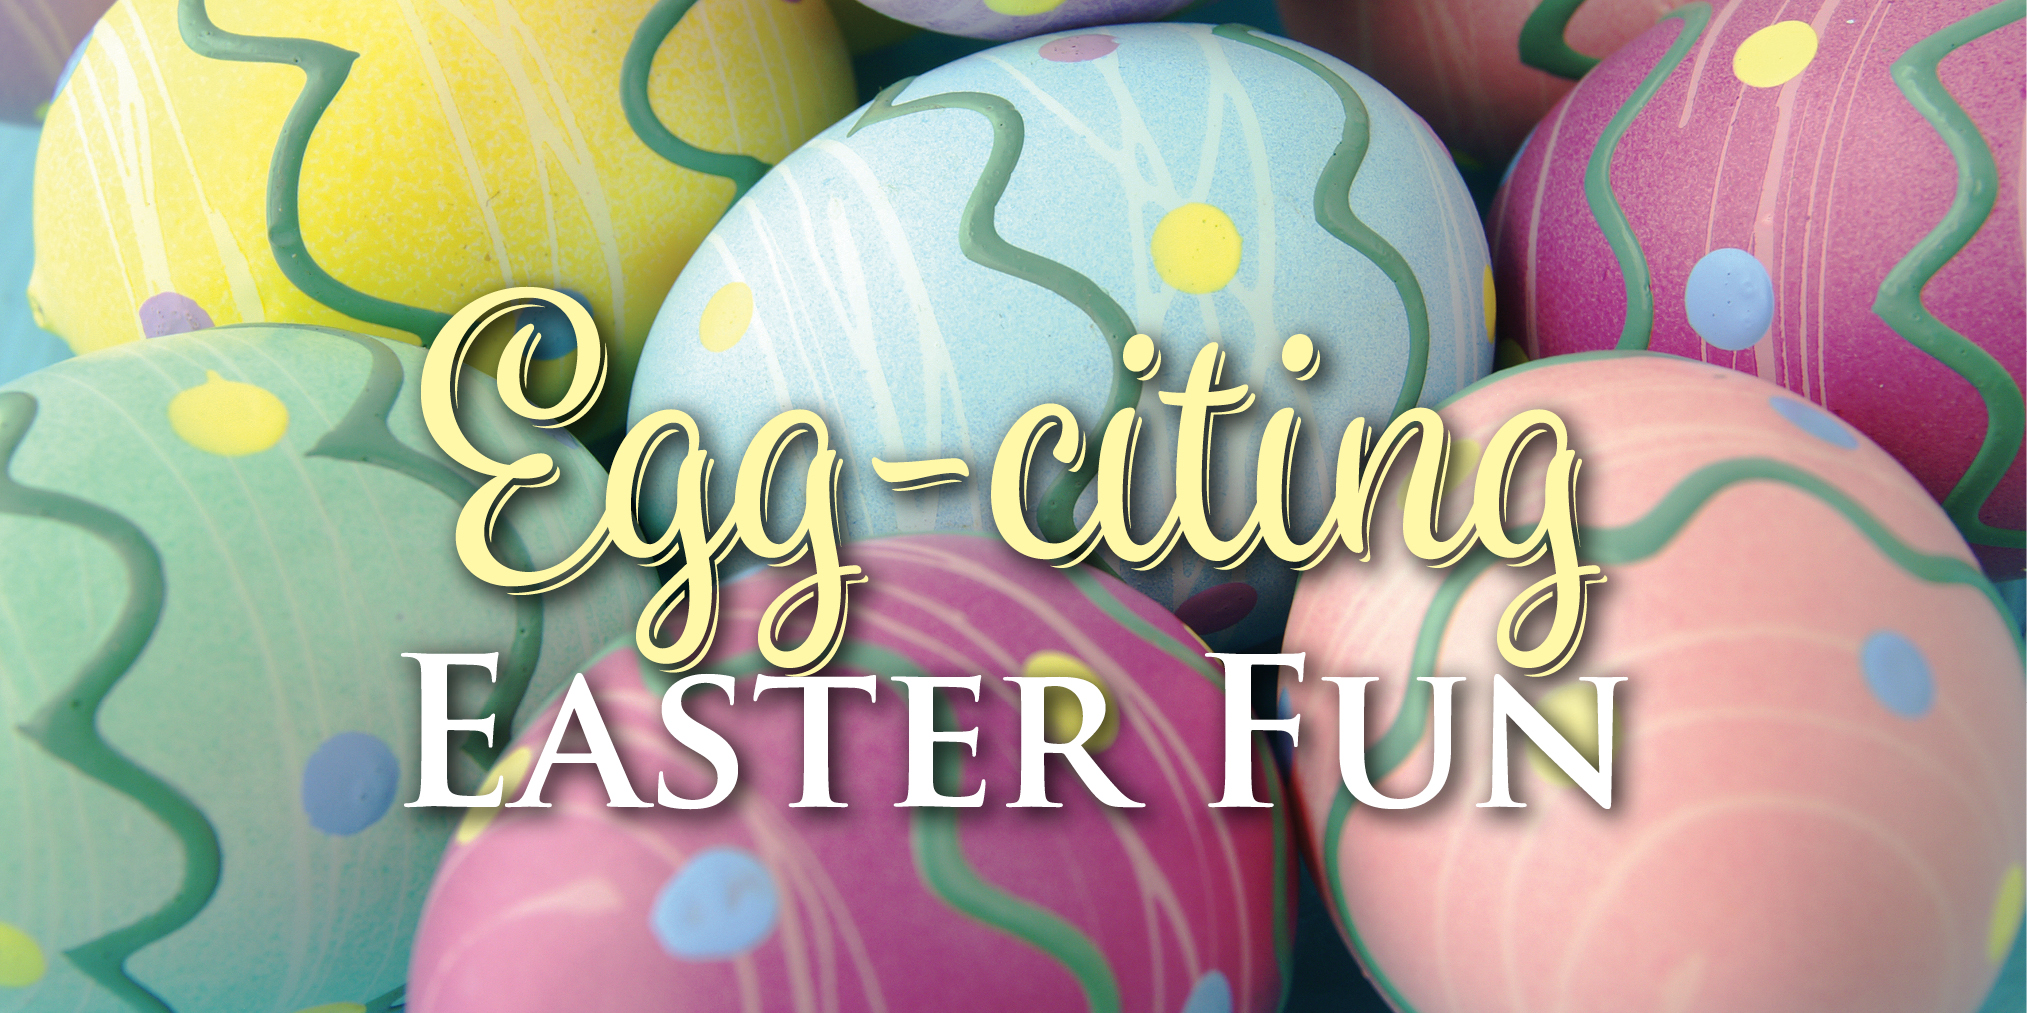 Egg-citing Easter Fun